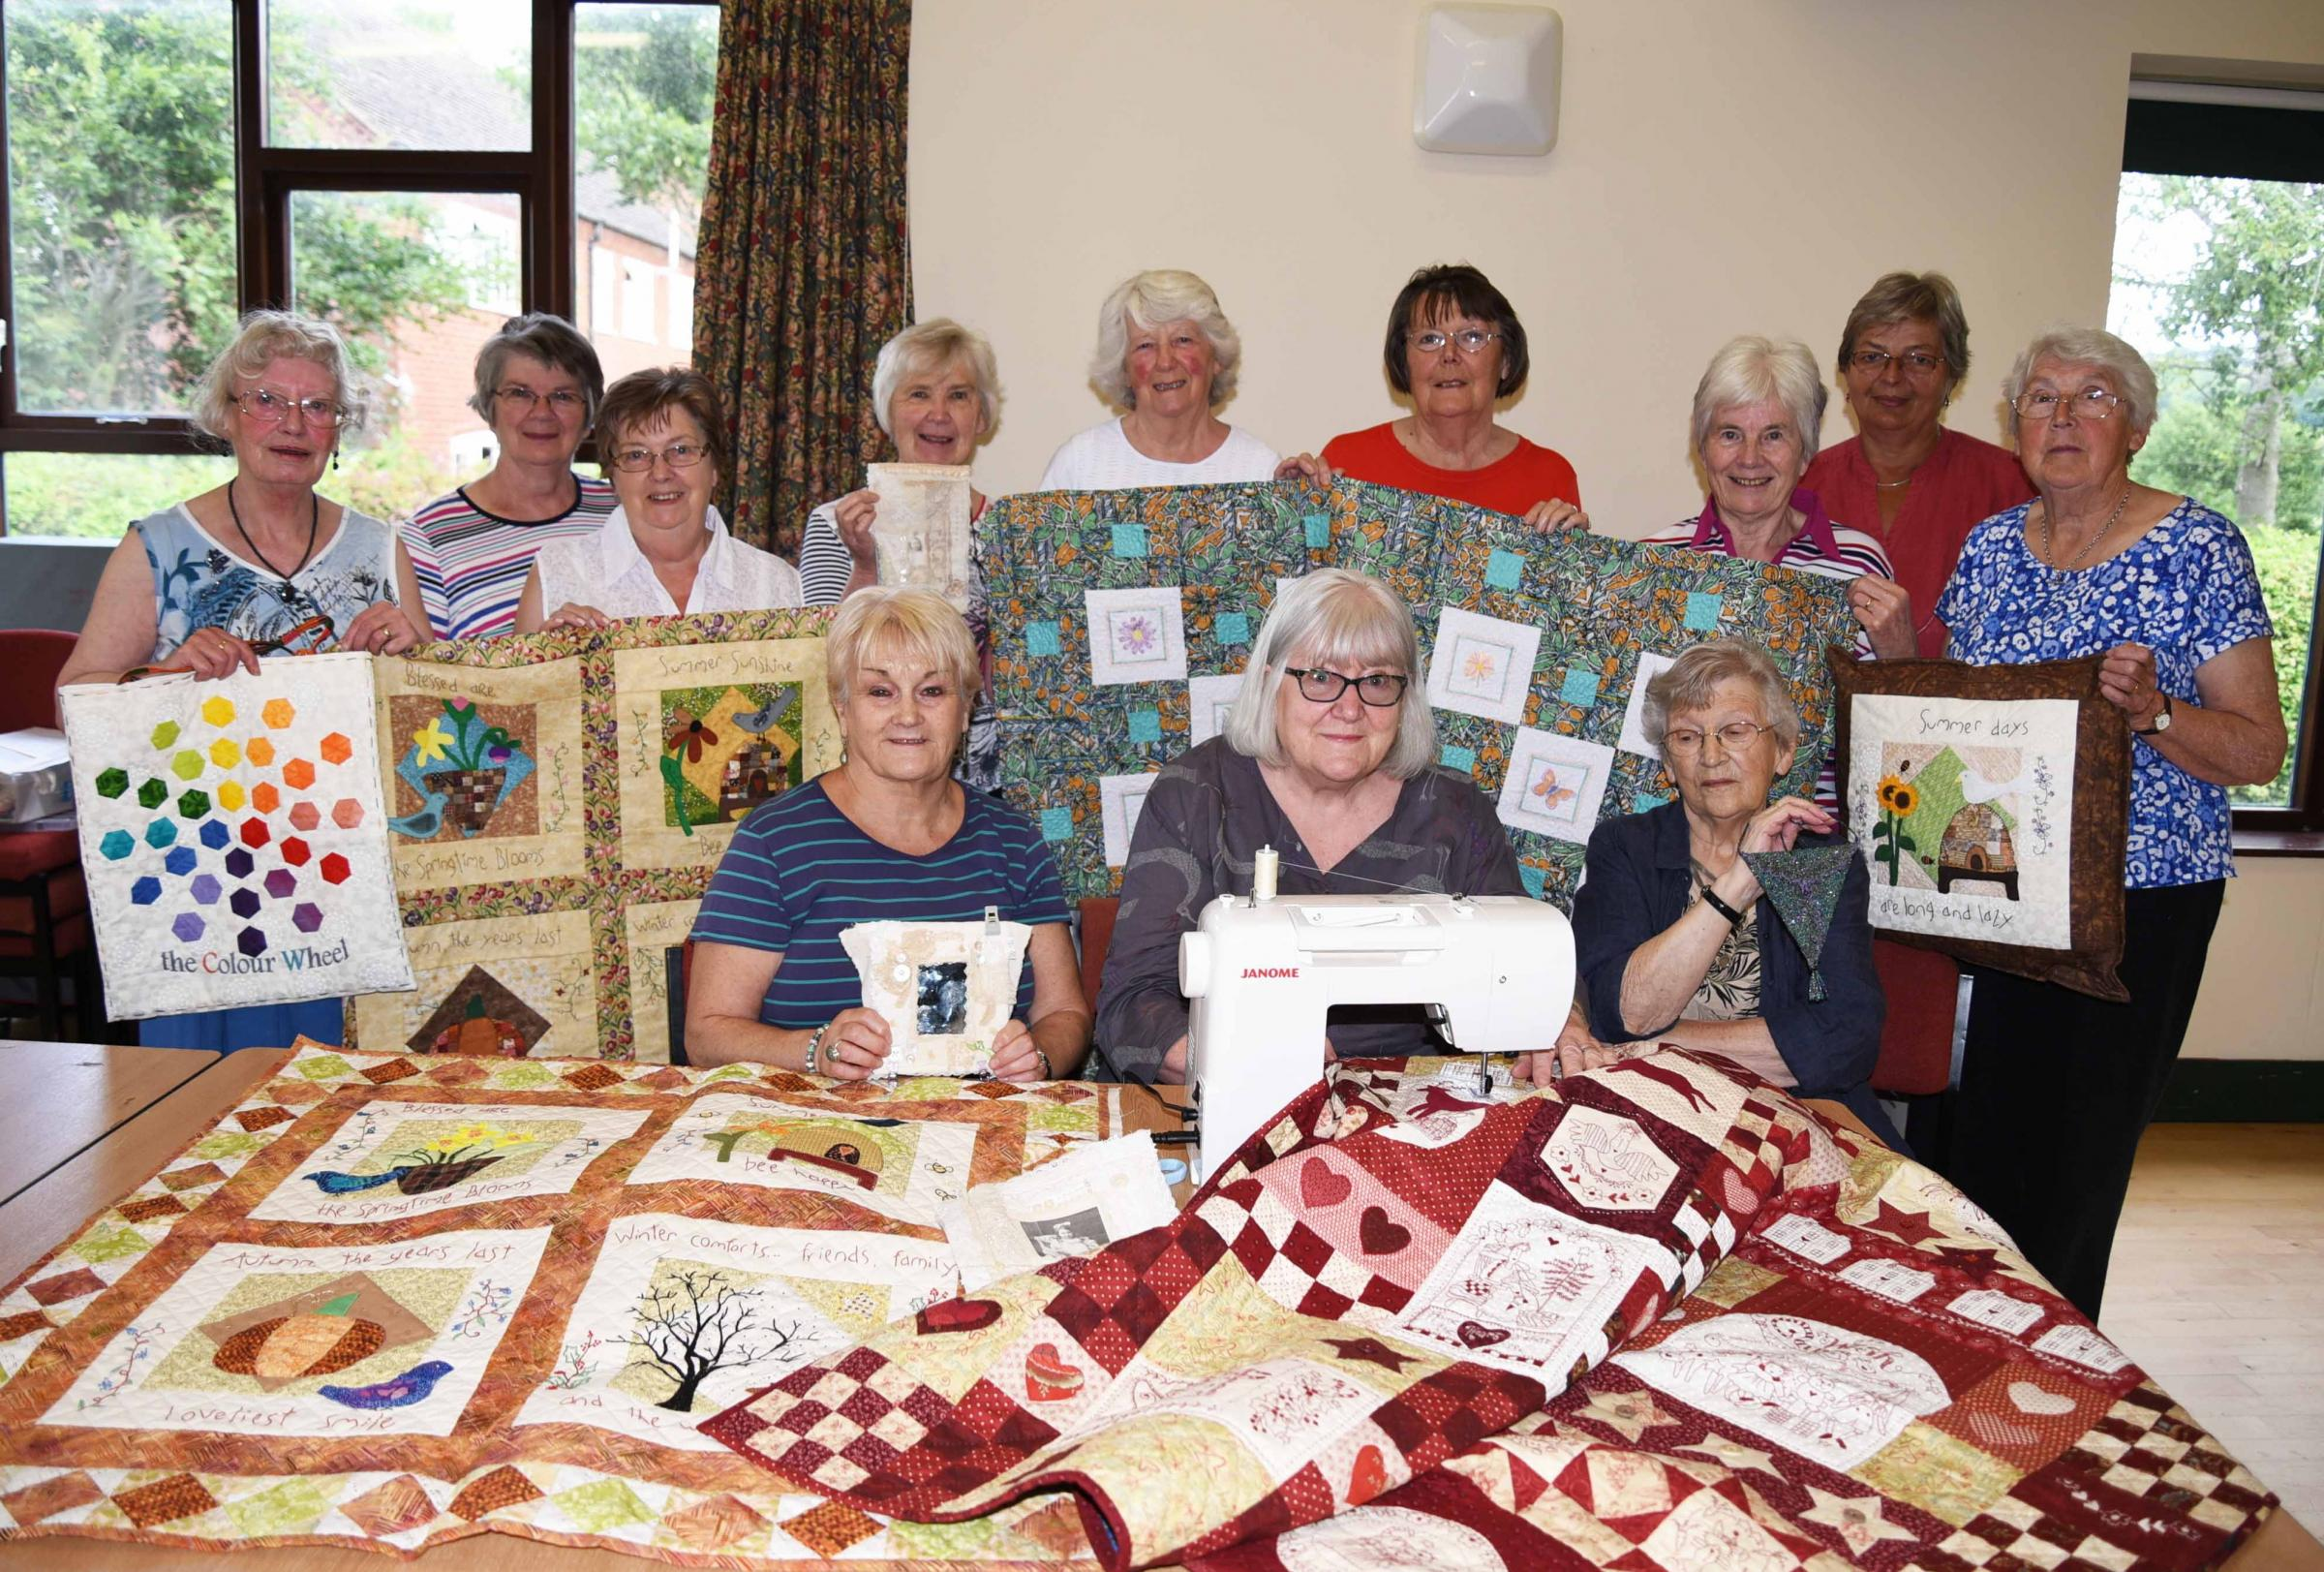 Members of Lingen Stitchers preparing for the event Maggie Flanders, Glenys Price, Ethel Joyce, Rene Morris, Sheila Davidson, Jane White, Anne Thomas, Claire Bordewey, Phyllis Jones, front Margaret Thorpe, Chris Body their tutor and Kath Morgan